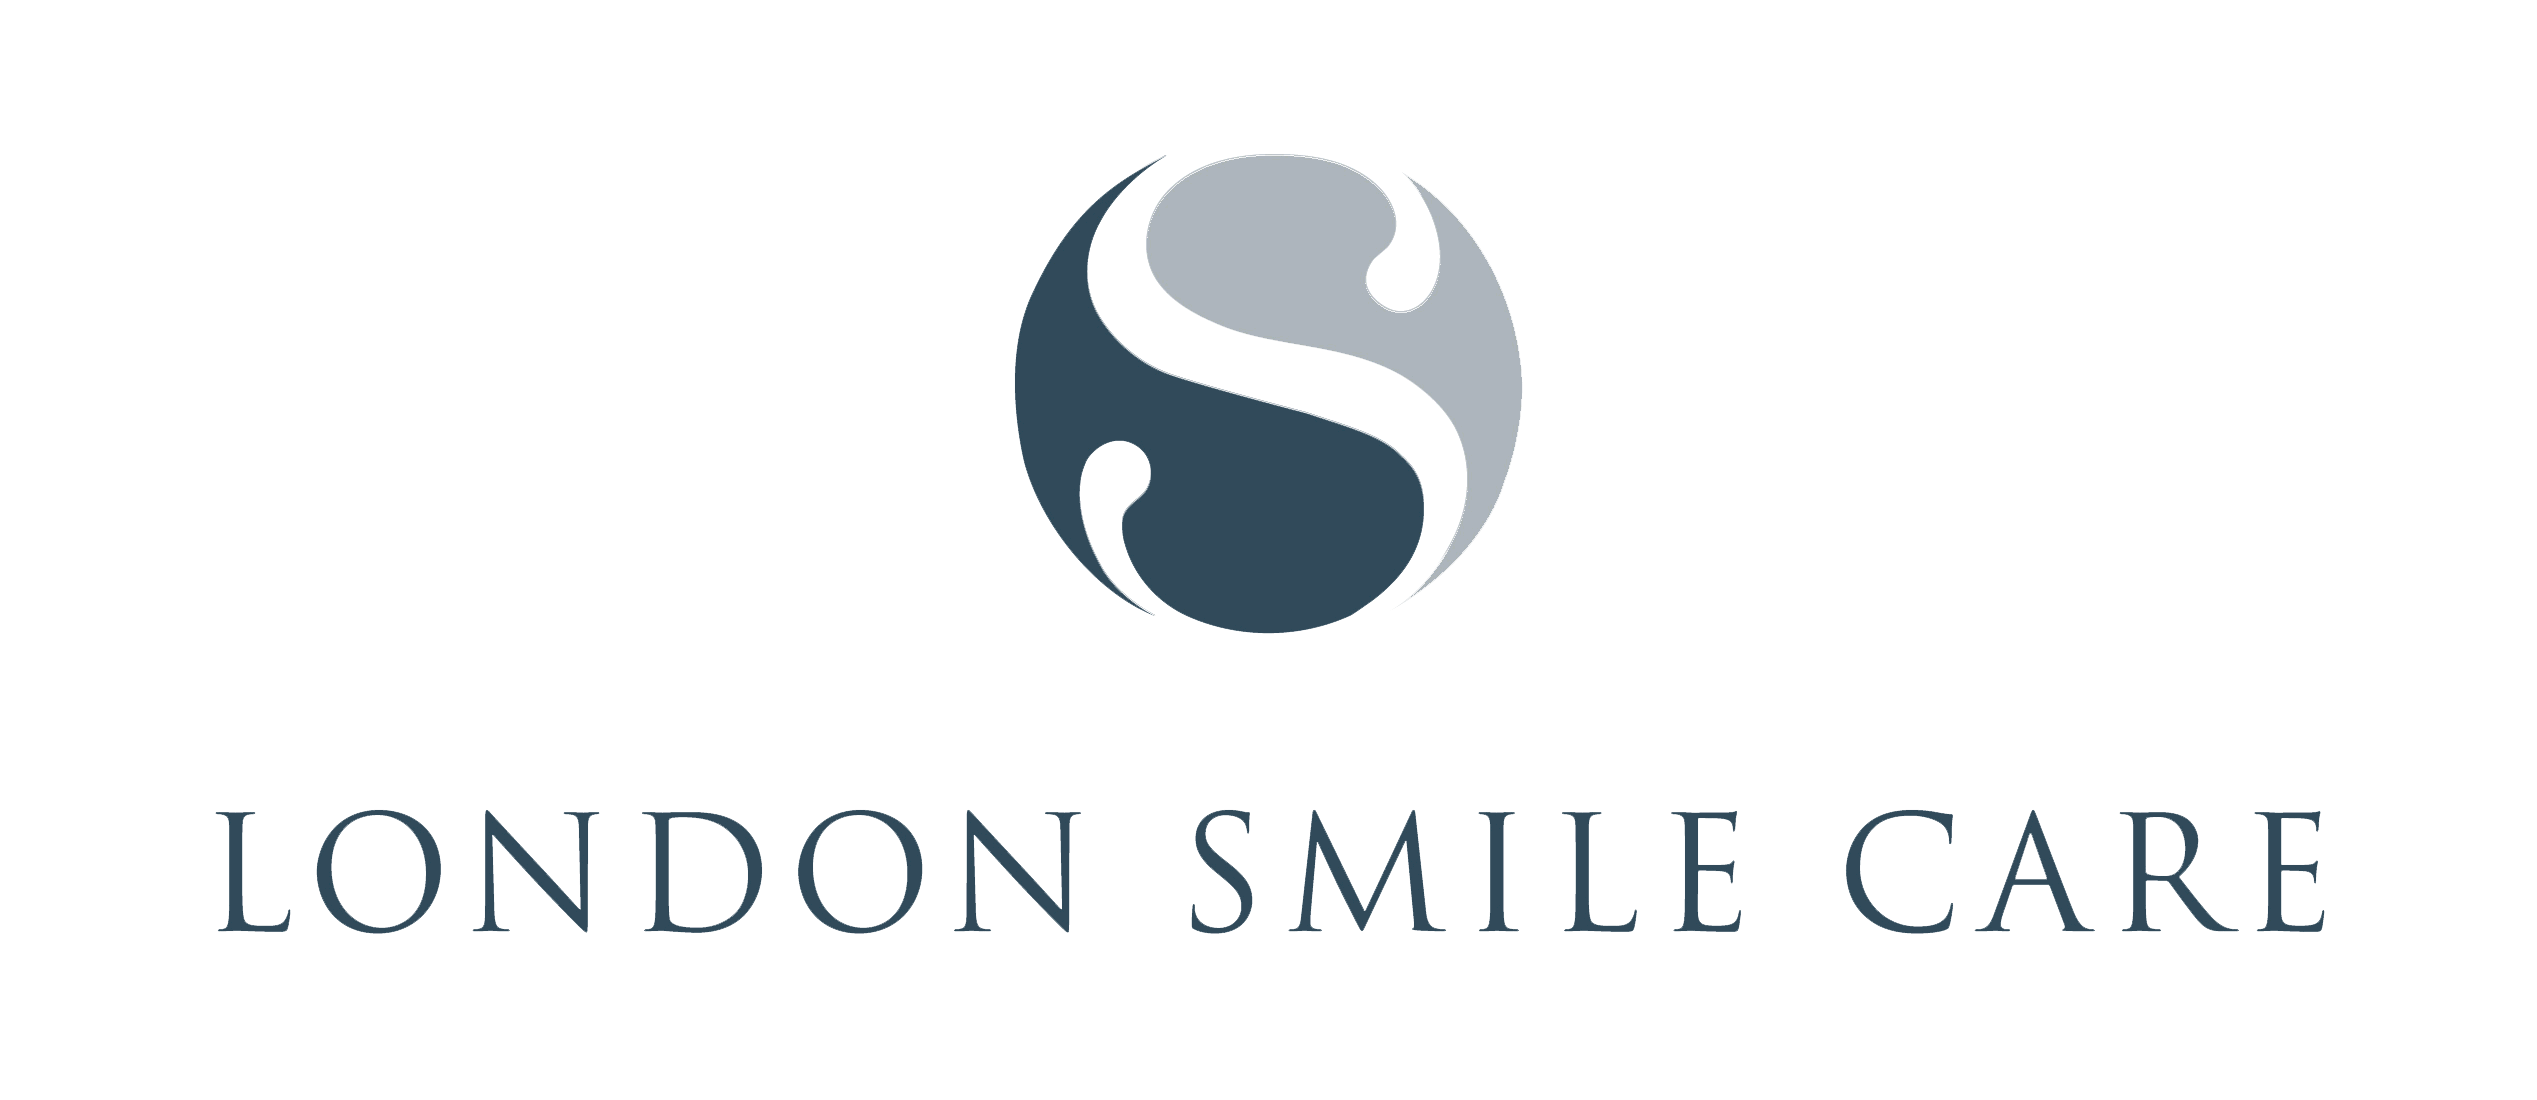 Dental Implants London - London Smile Care Dental Clinic